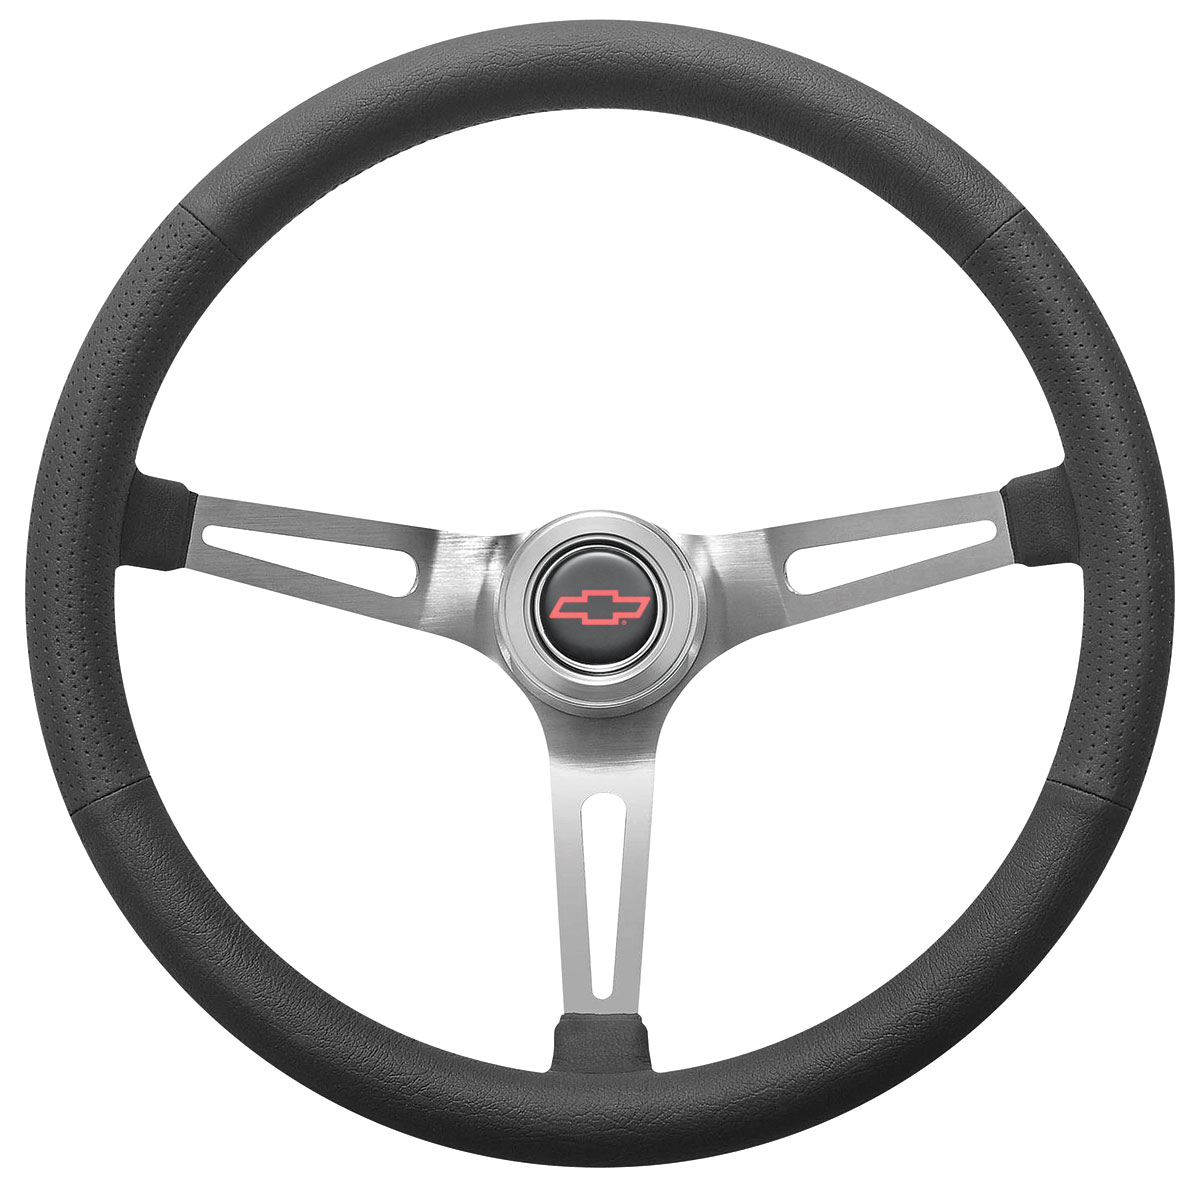 Photo of Steering Wheel Kit, Retro Wheel With Slots Hi-Rise Cap - Polished with red Bowtie center